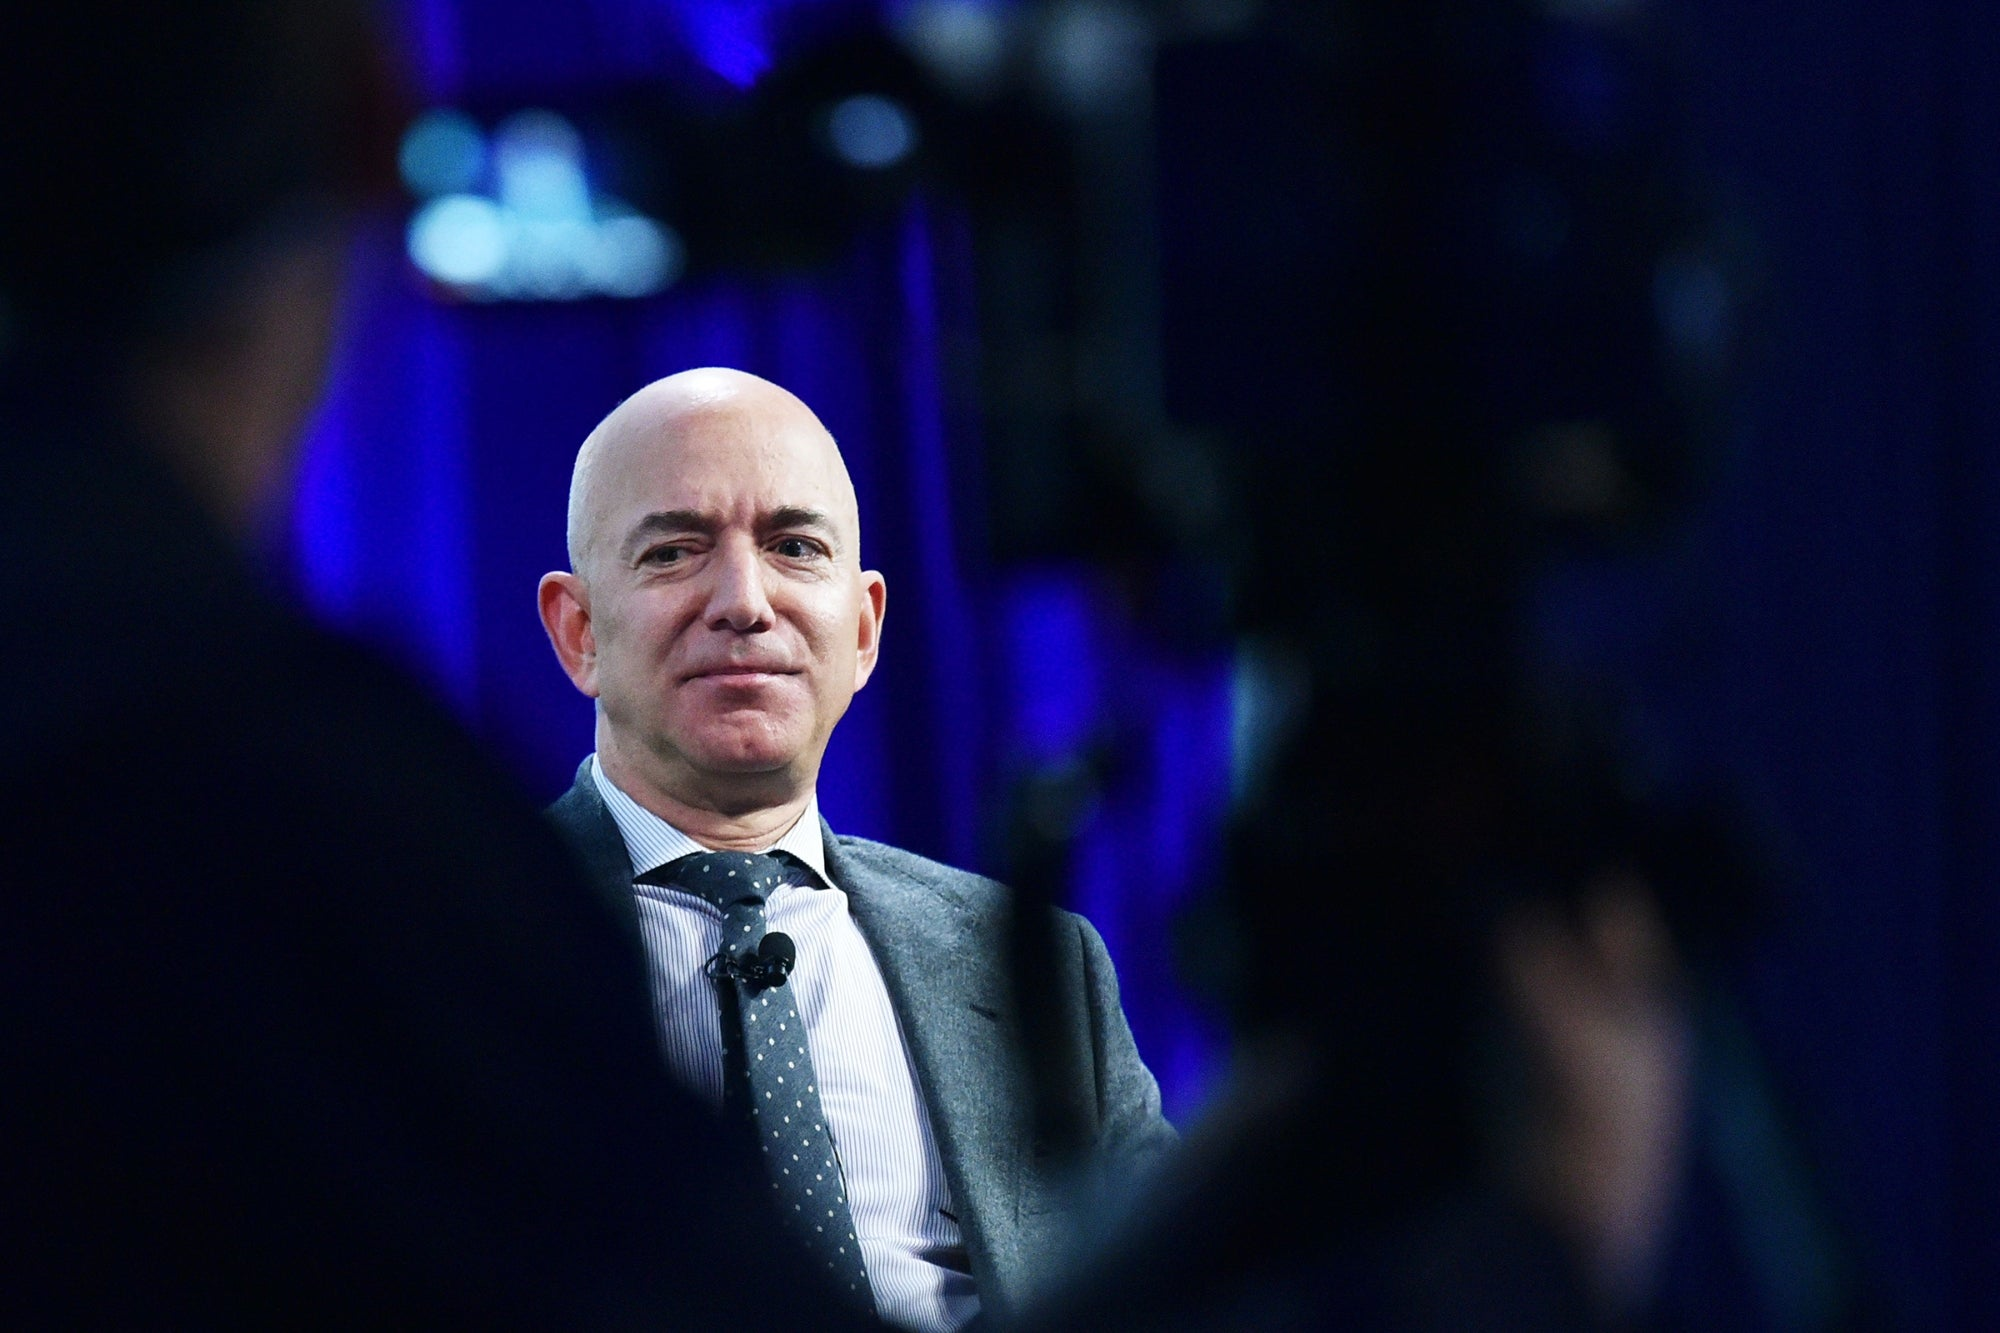 Who Temporarily Dethroned Jeff Bezos as Richest Man In the World This Week?